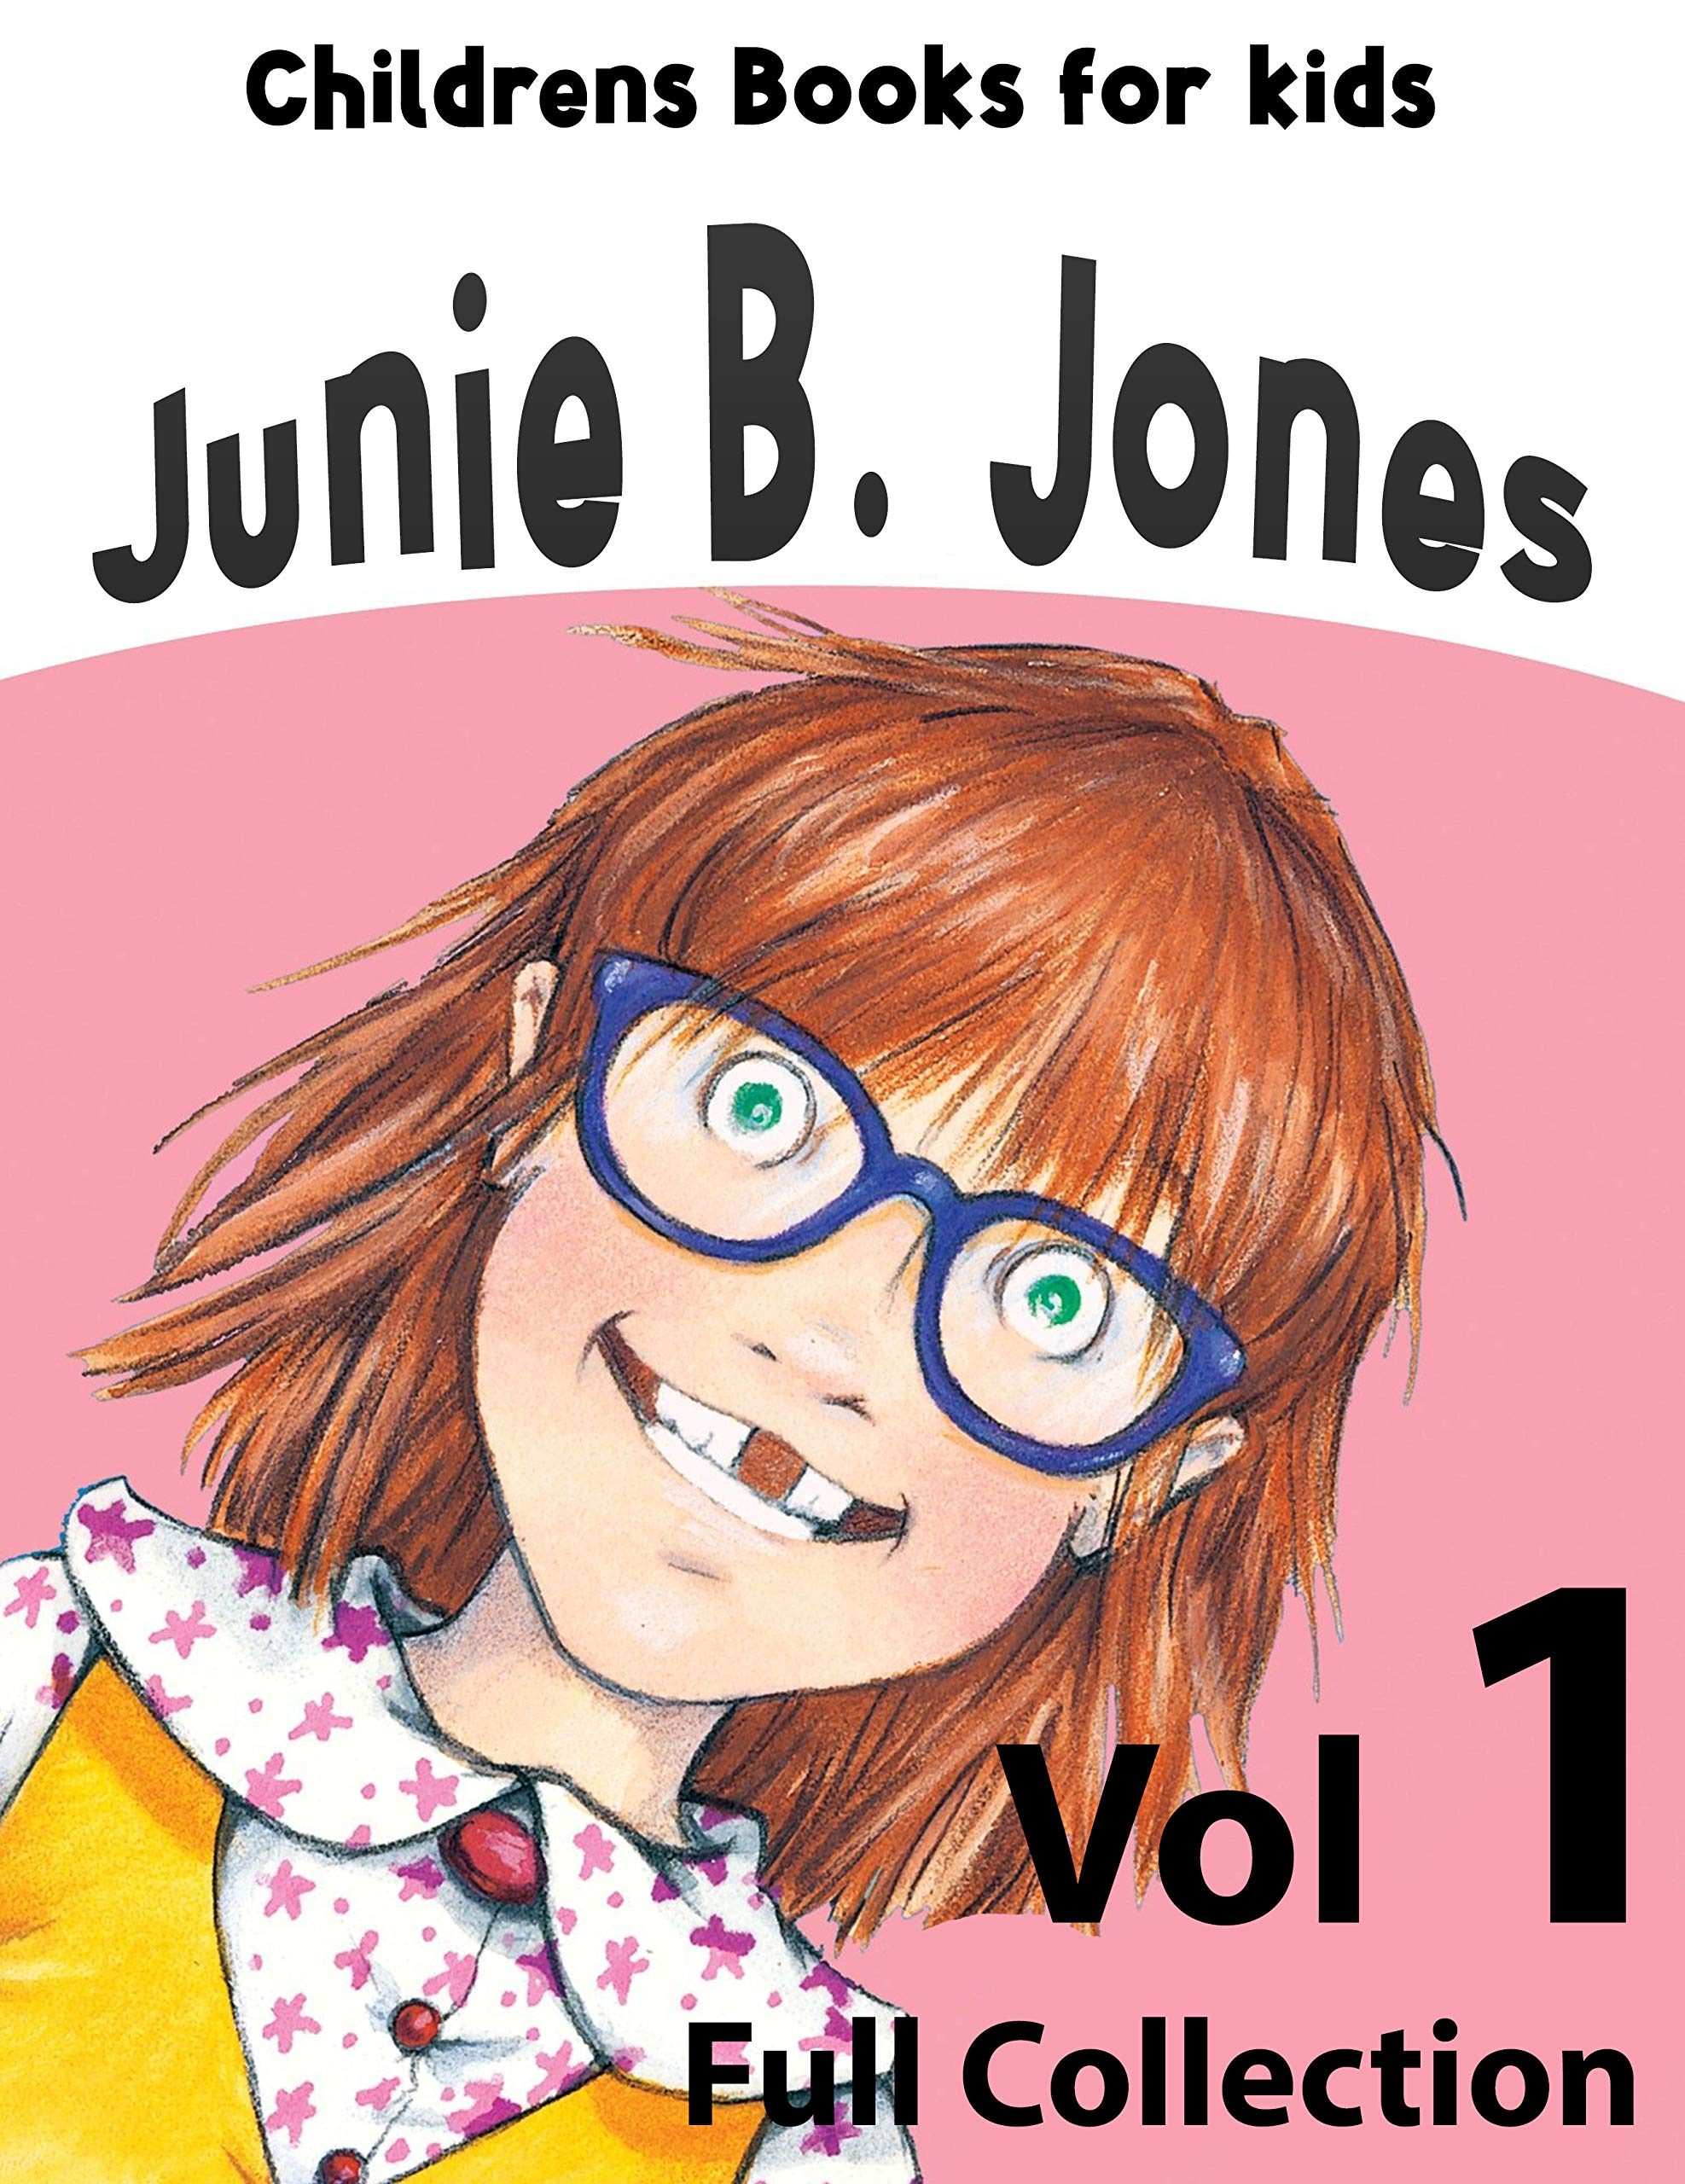 Childrens Books for kids Junie B. Jones Full Collection: Dork Diaries Limited Edition Vol 1